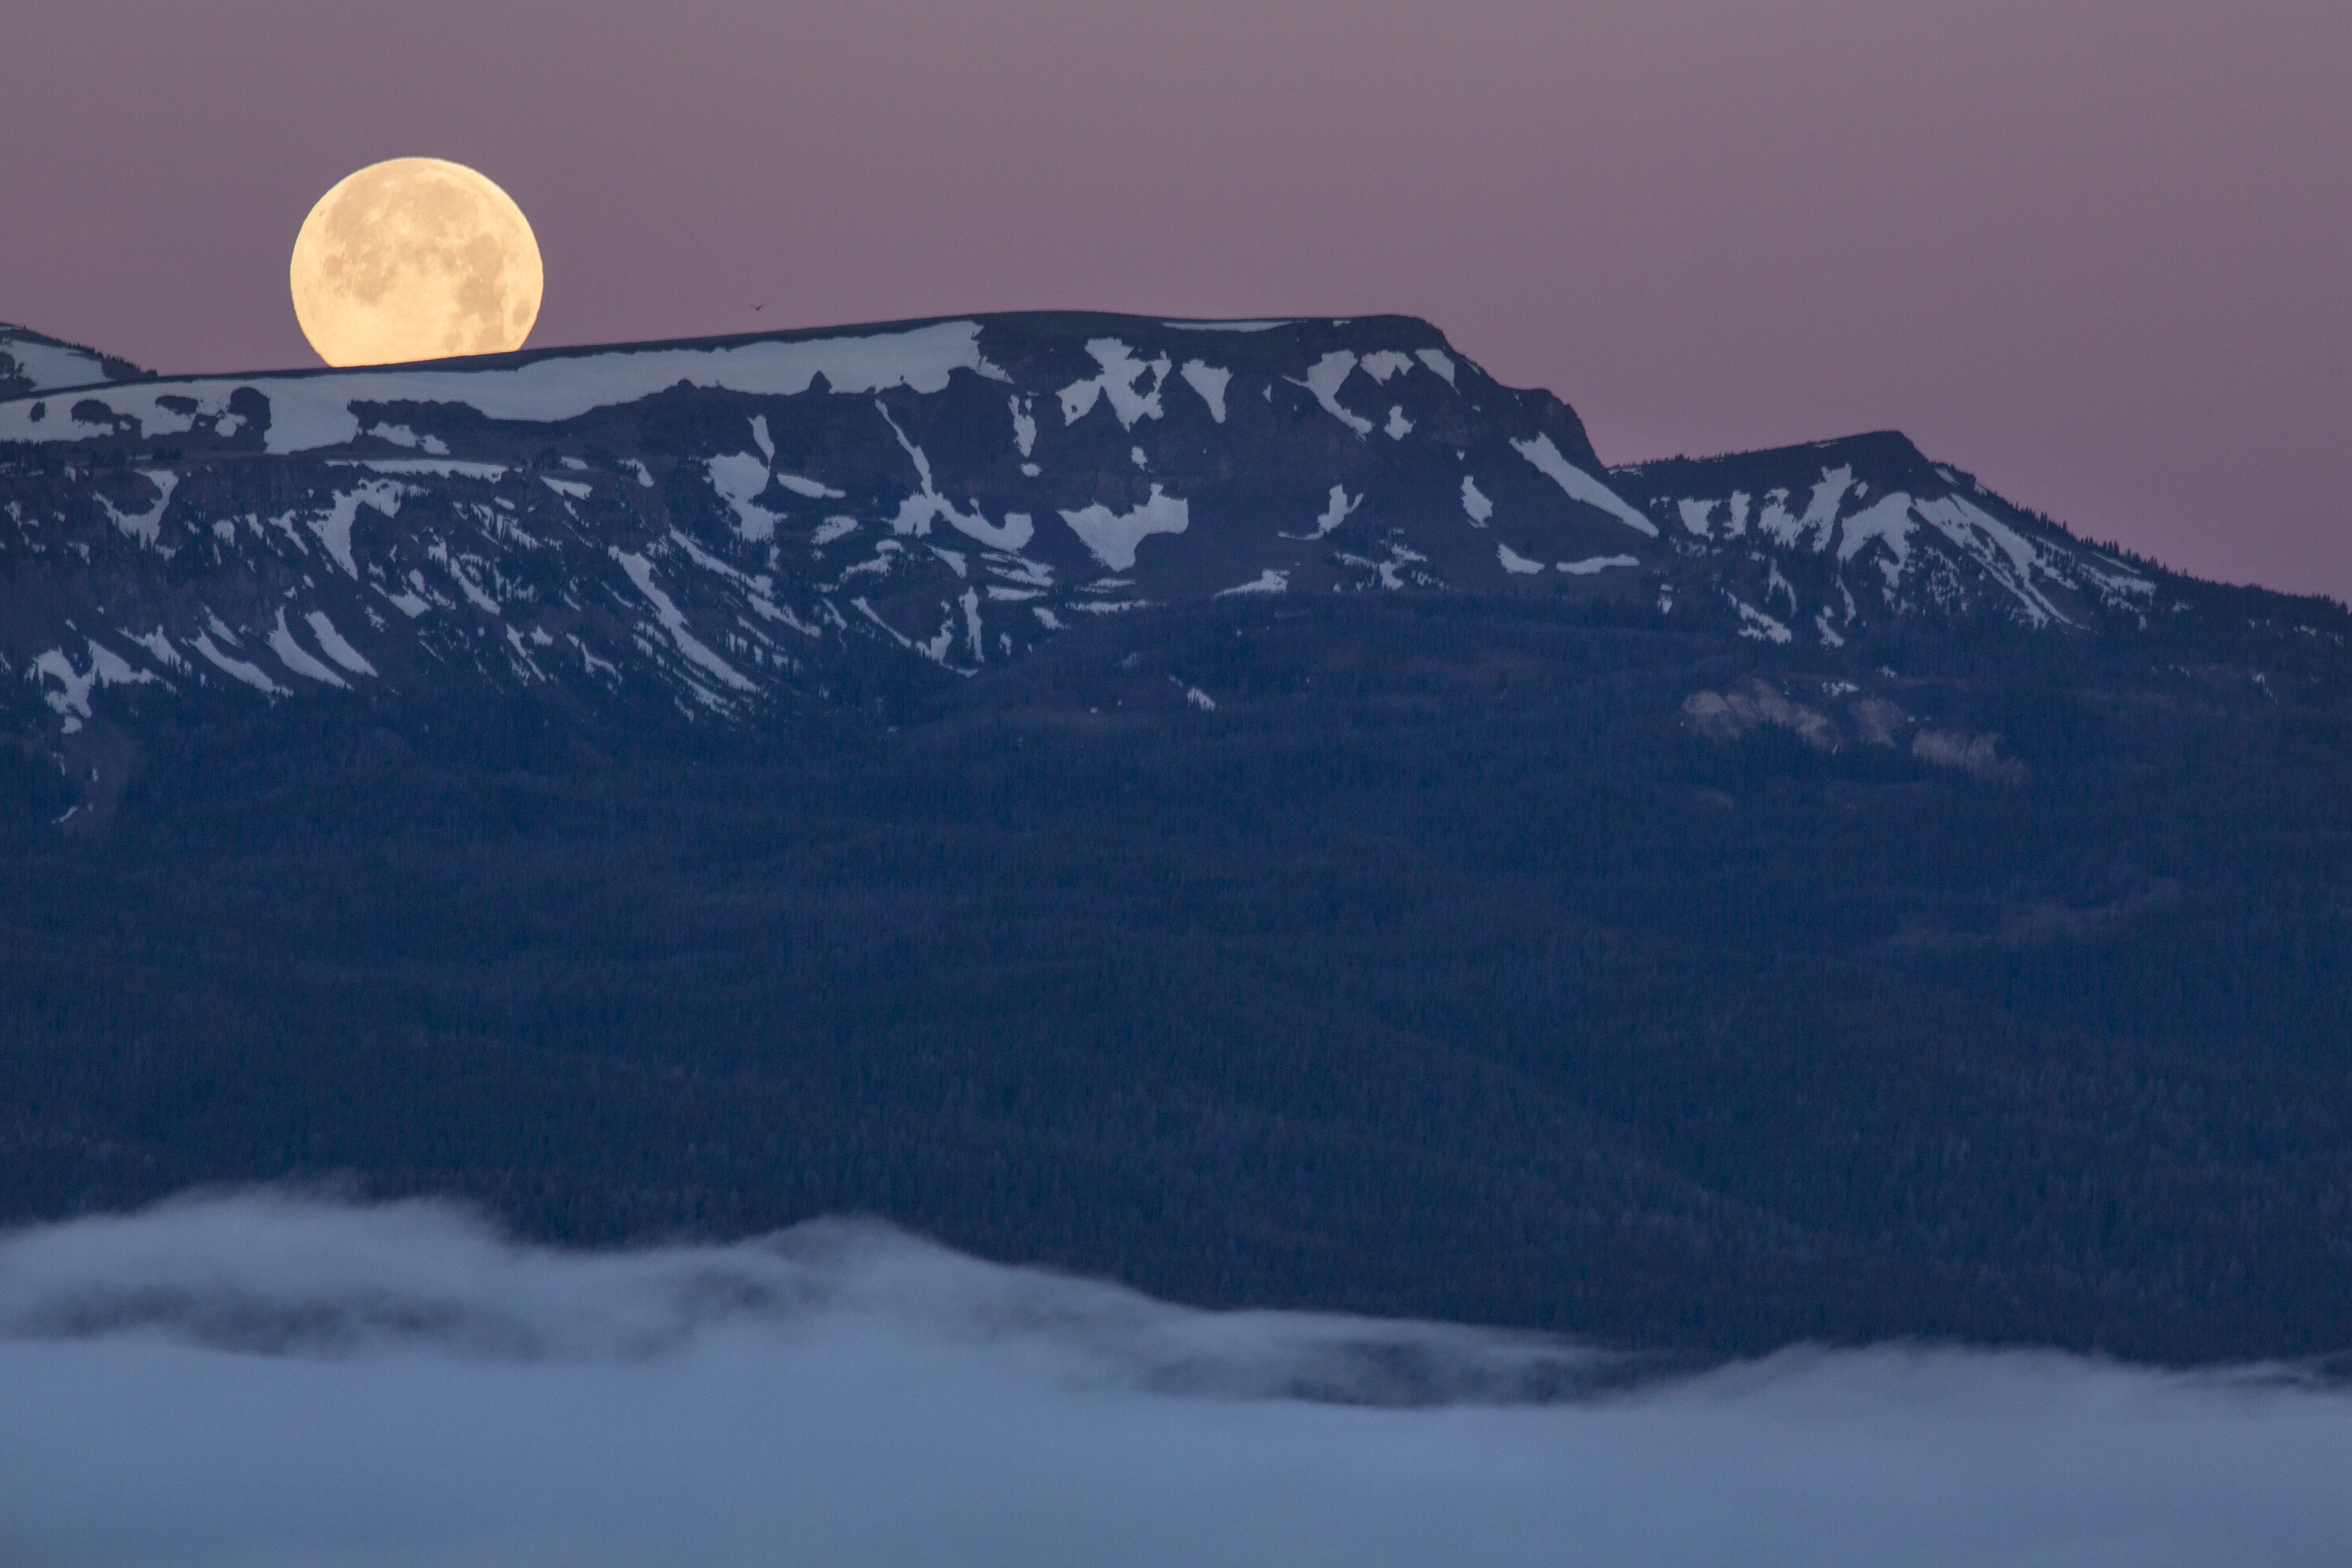 supermoon_setting_in_centennial_mountains_wsa_9120319115